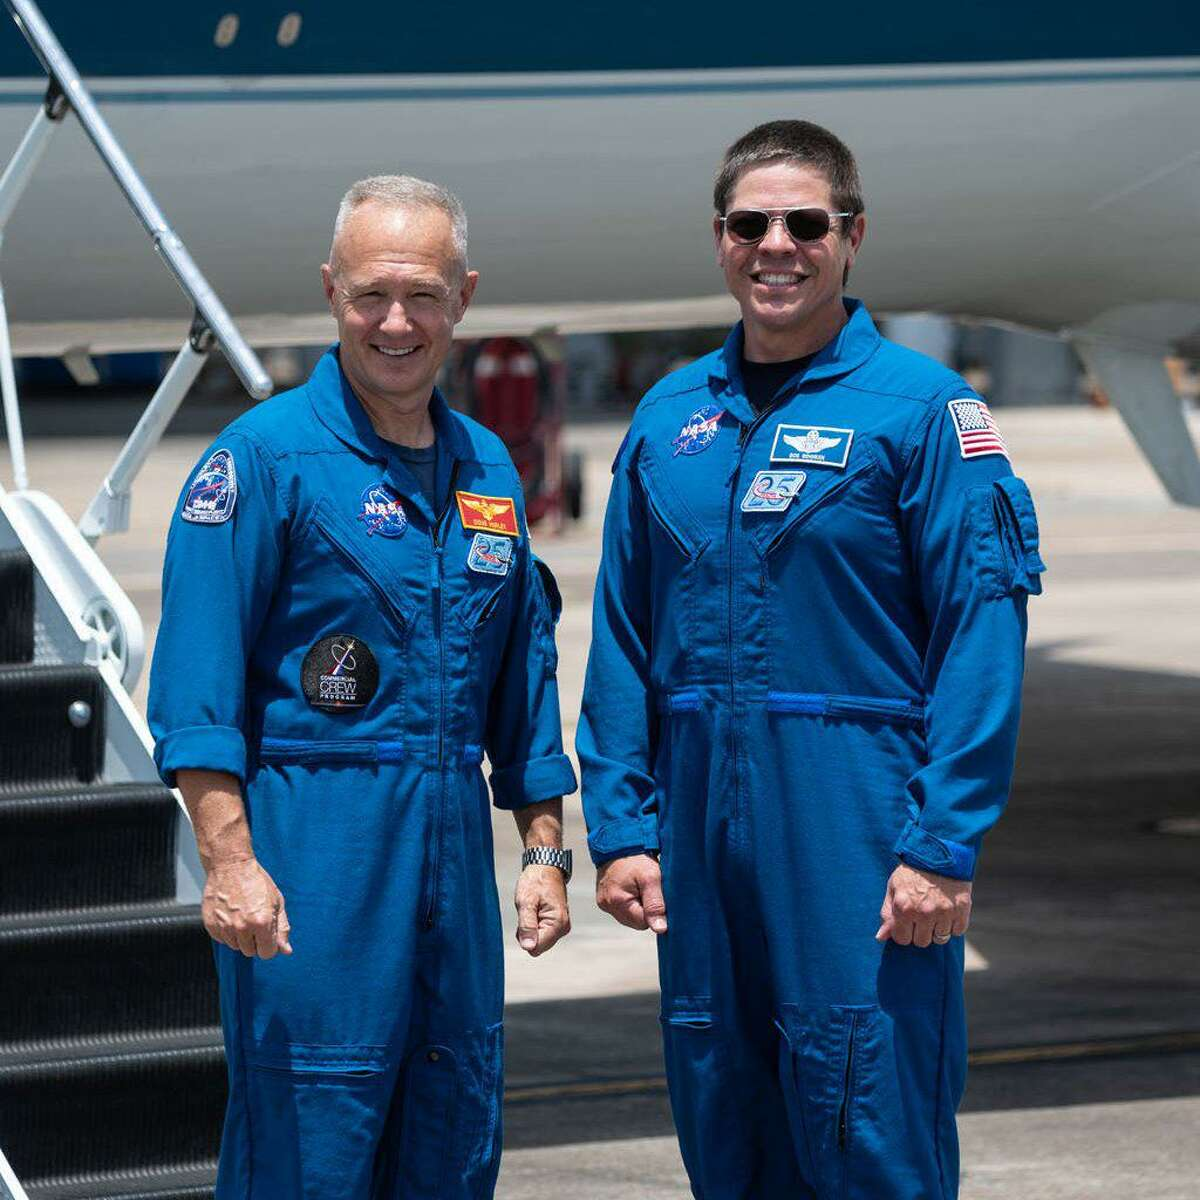 Astronauts Doug Hurley, left, and Bob Behnken at Ellington Airport on May 20, 2020. They are departing Houston for Kennedy Space Center in Florida, where they will launch into space on May 27 on a SpaceX Falcon 9 rocket and Crew Dragon spacecraft.